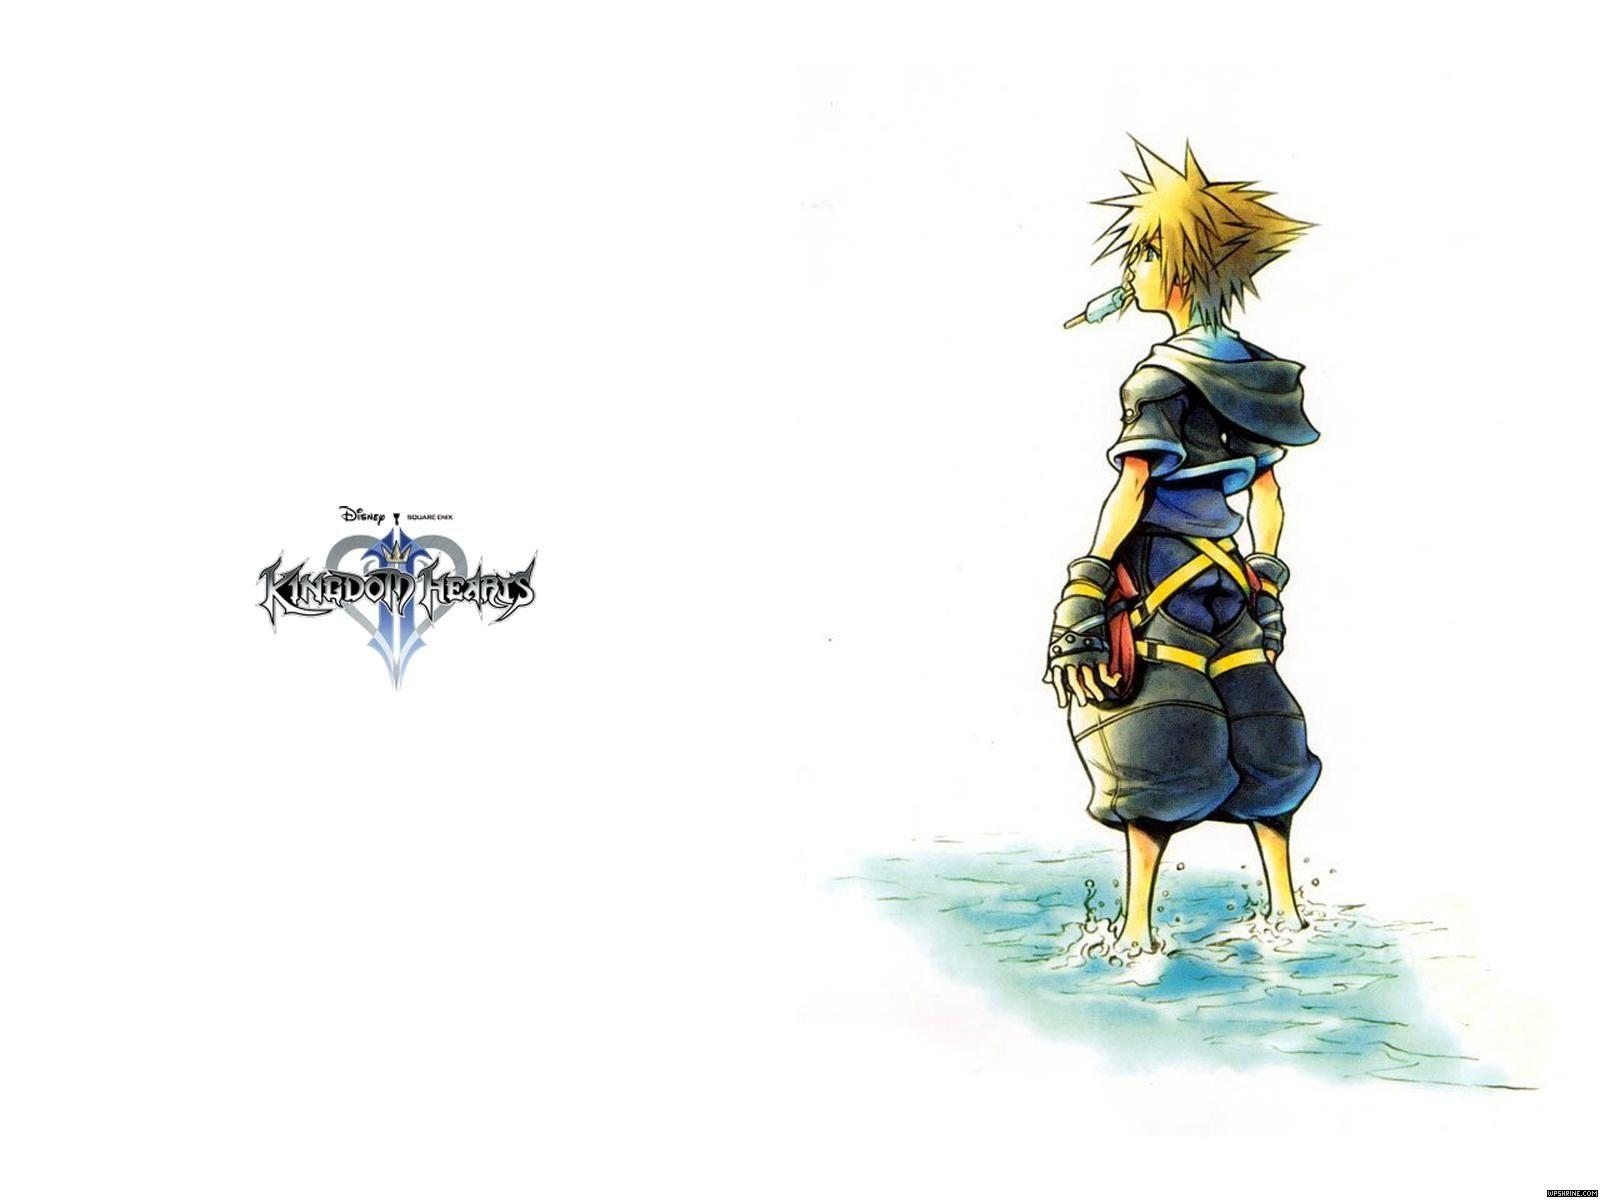 Wallpapers For > Kingdom Hearts Wallpapers Hd Widescreen